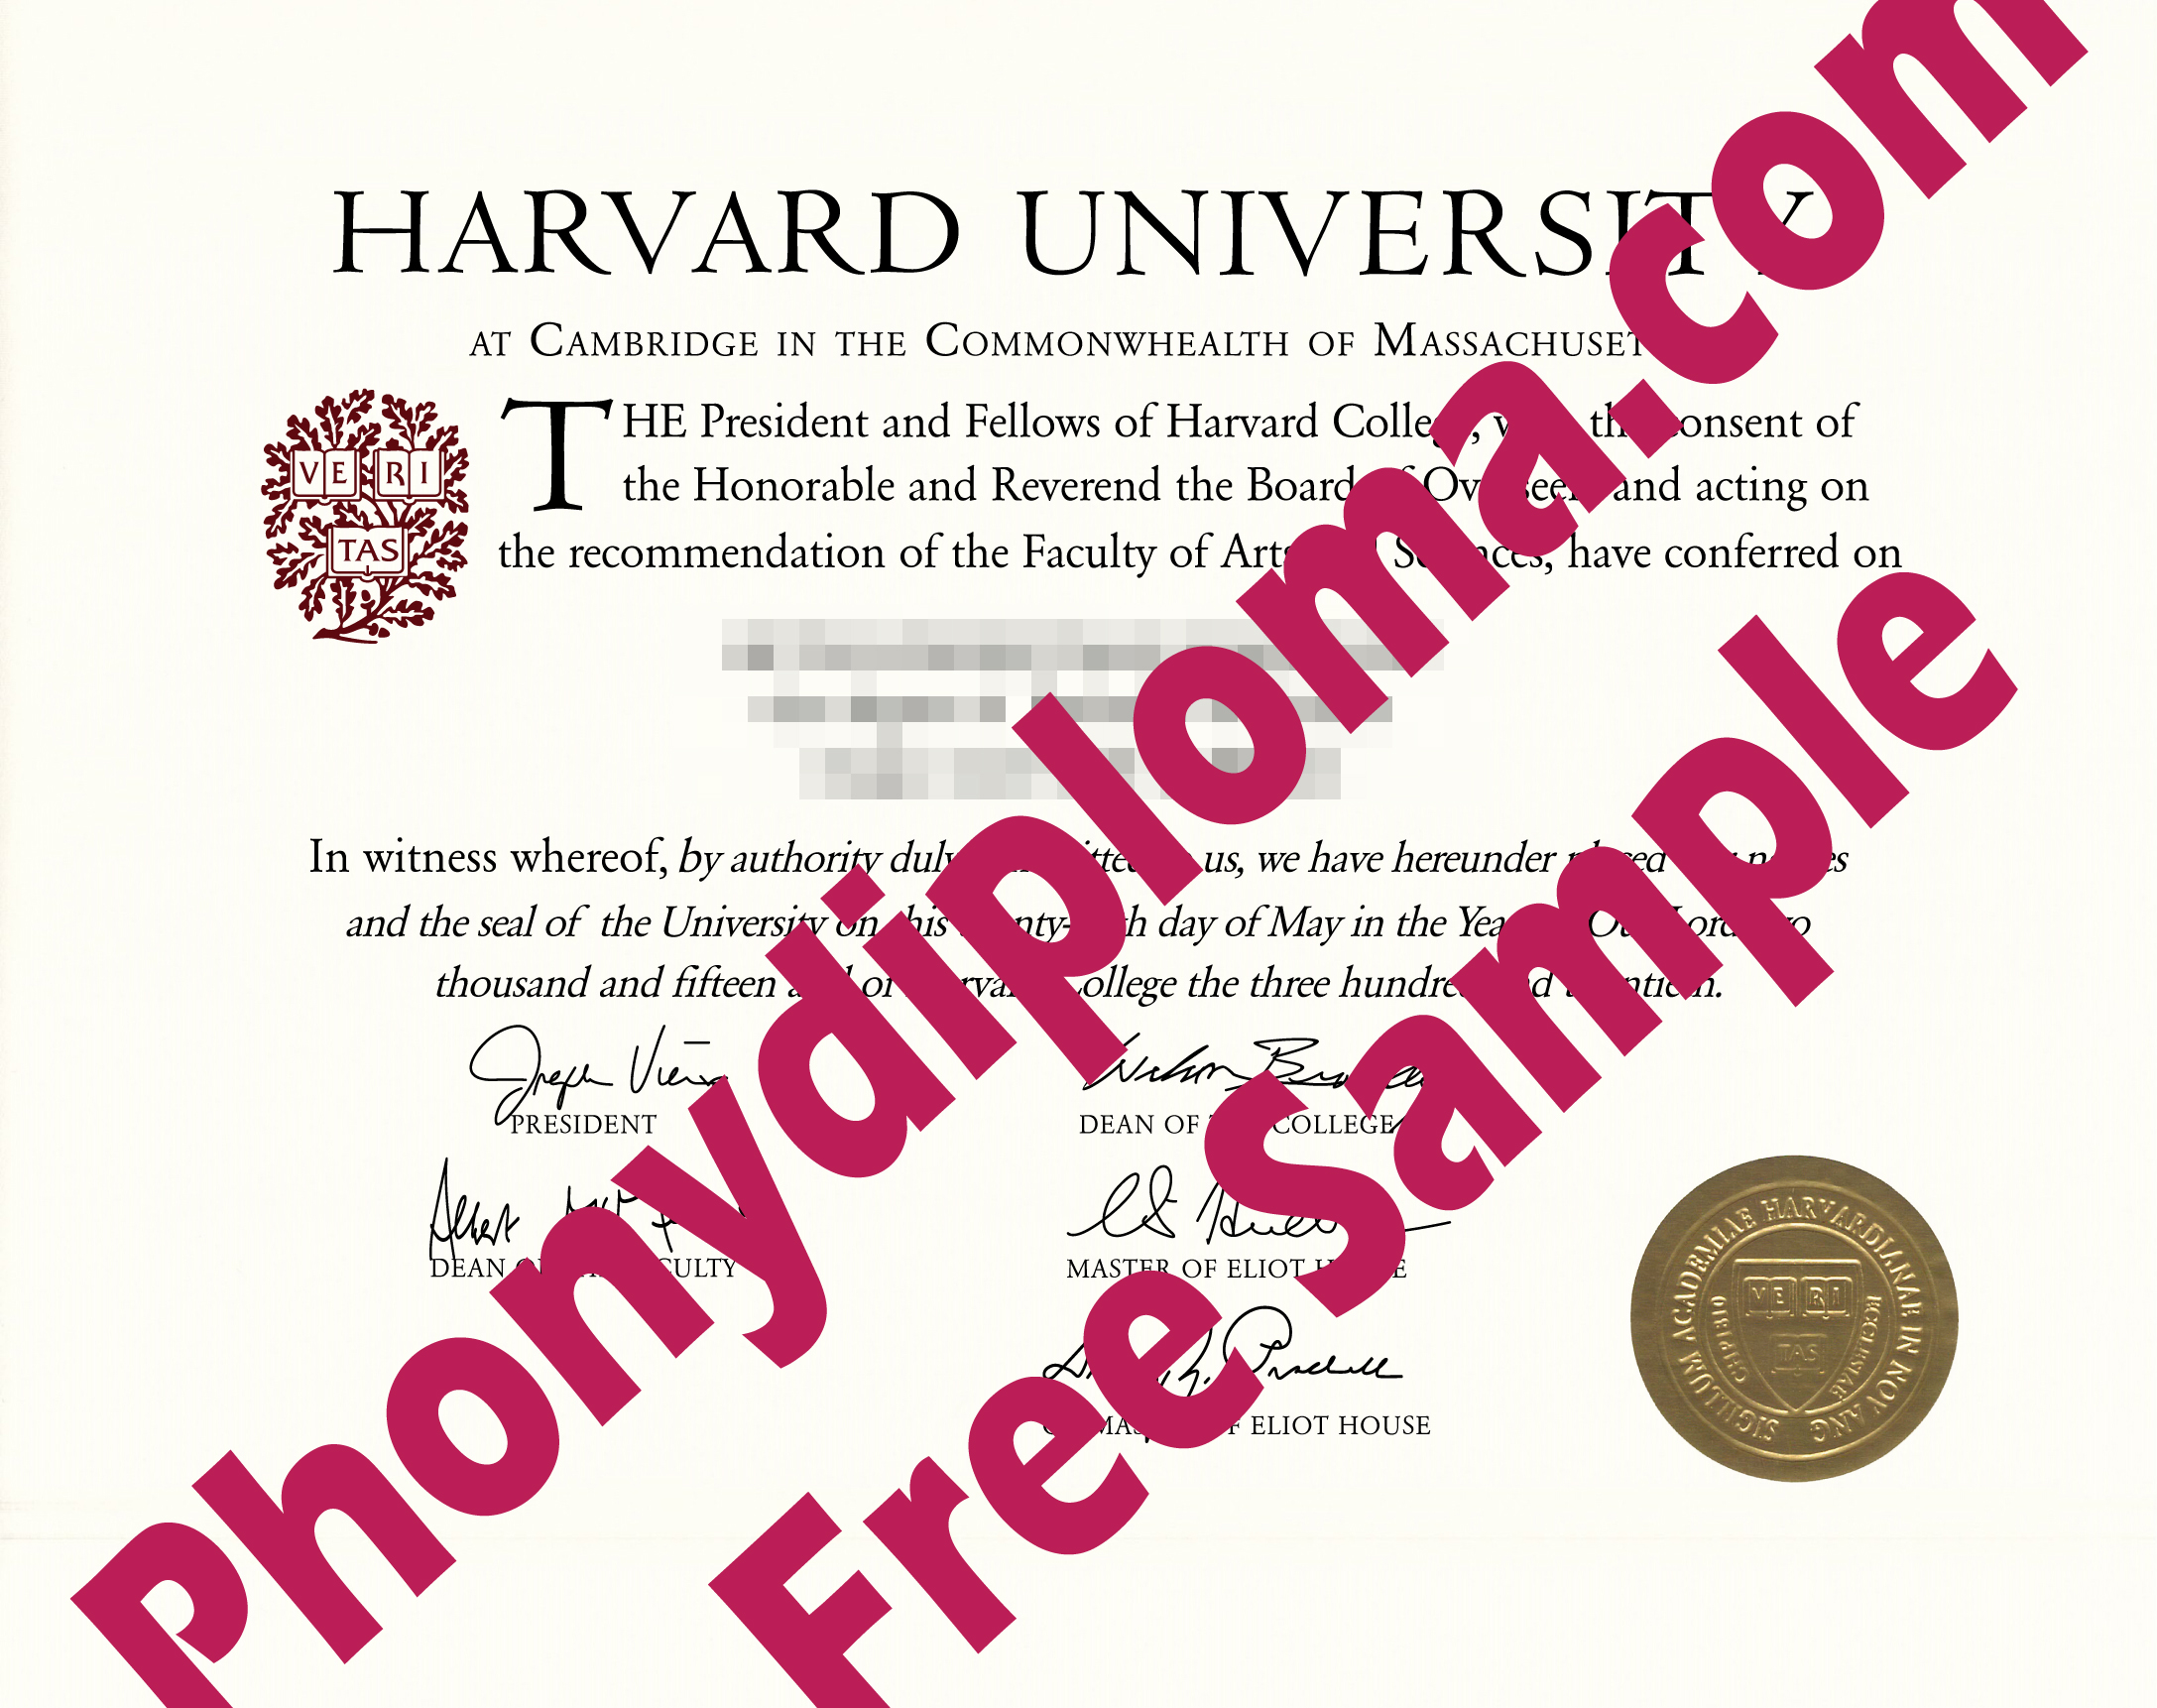 Harvard University Free Sample From Phonydiploma (2)